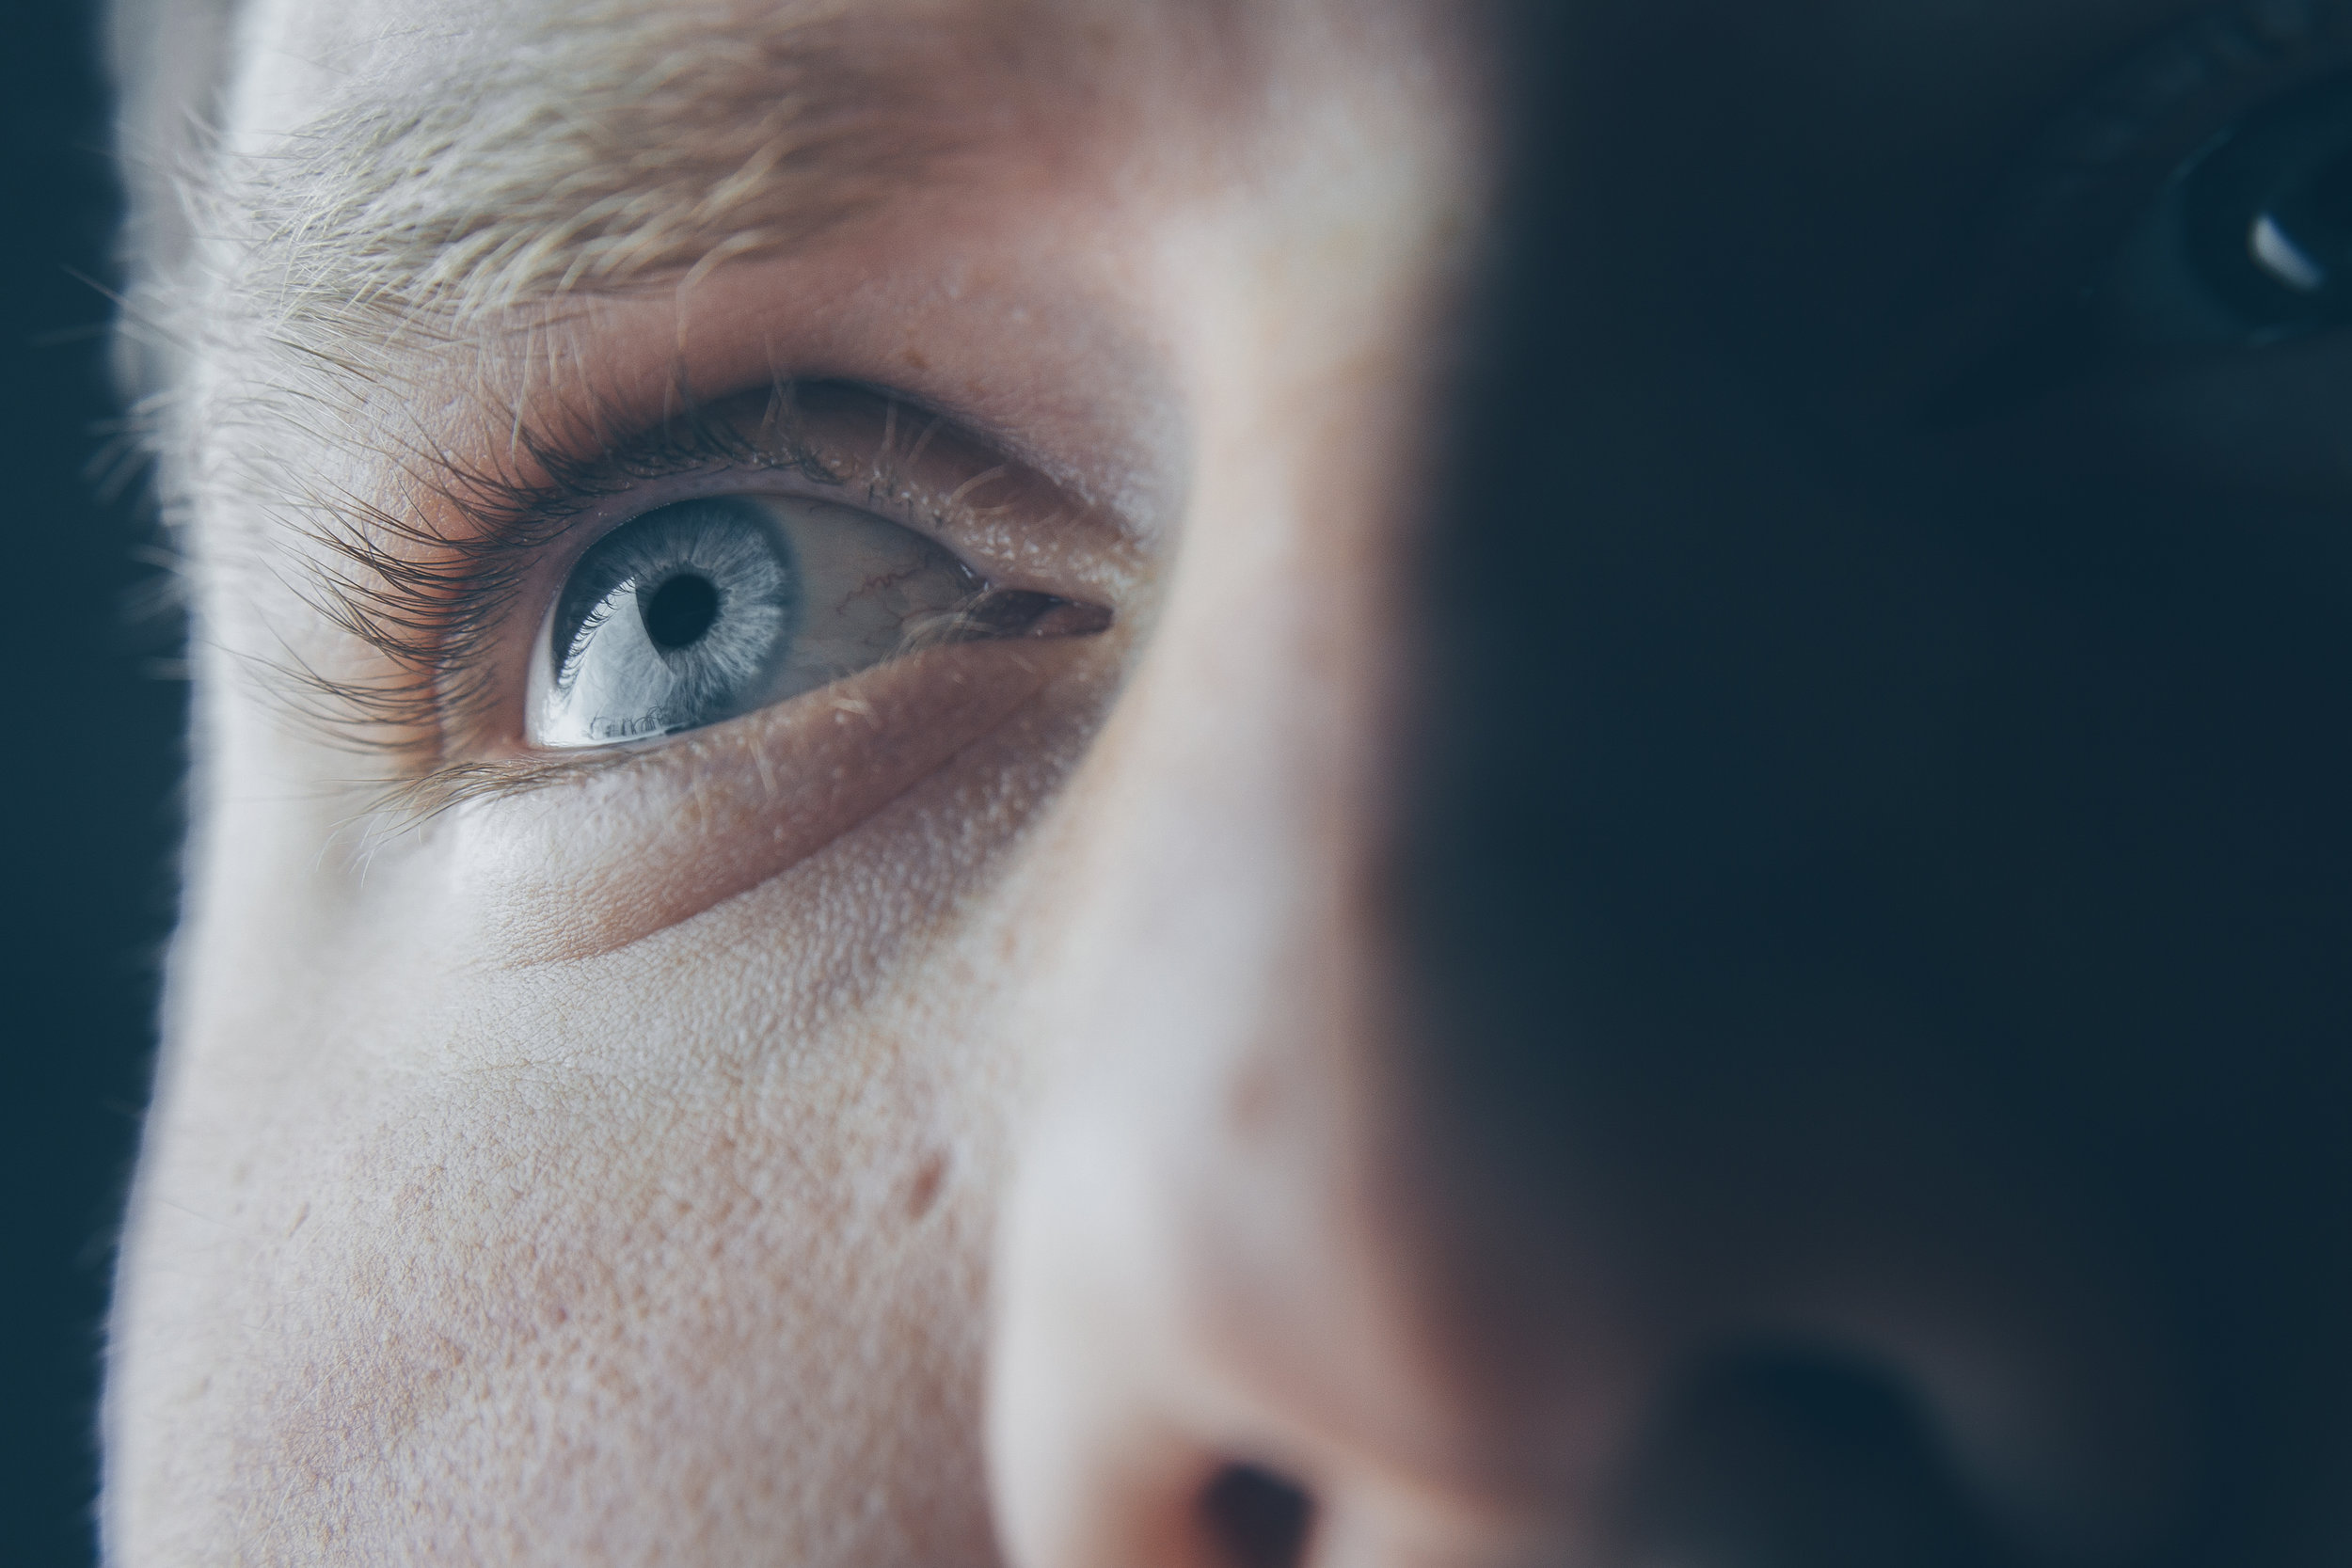 EMDR Therapy - Eye Movement Desensitization and Reprocessing Therapy is a type of therapy which involves identifying and processing the past, and is proven effective, especially for individuals who have undergone trauma. Learn More about EMDR Therapy here and how it can help you heal.